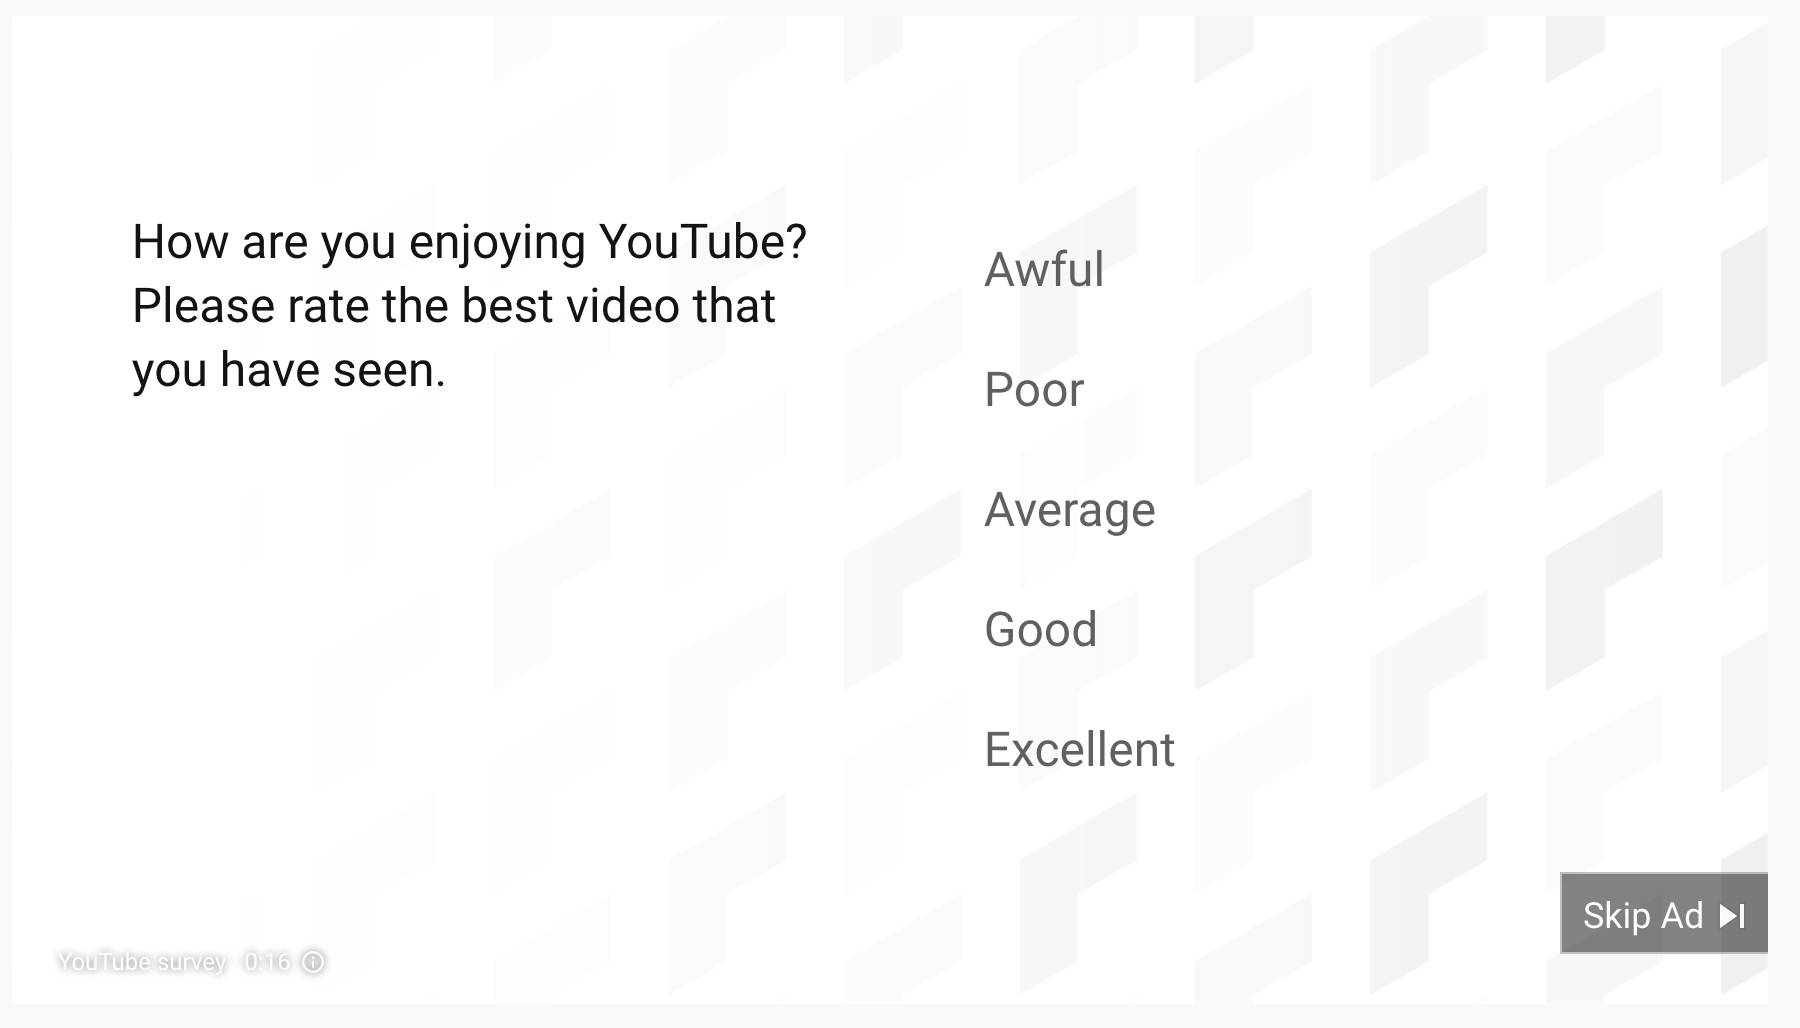 Product feedback example from YouTube